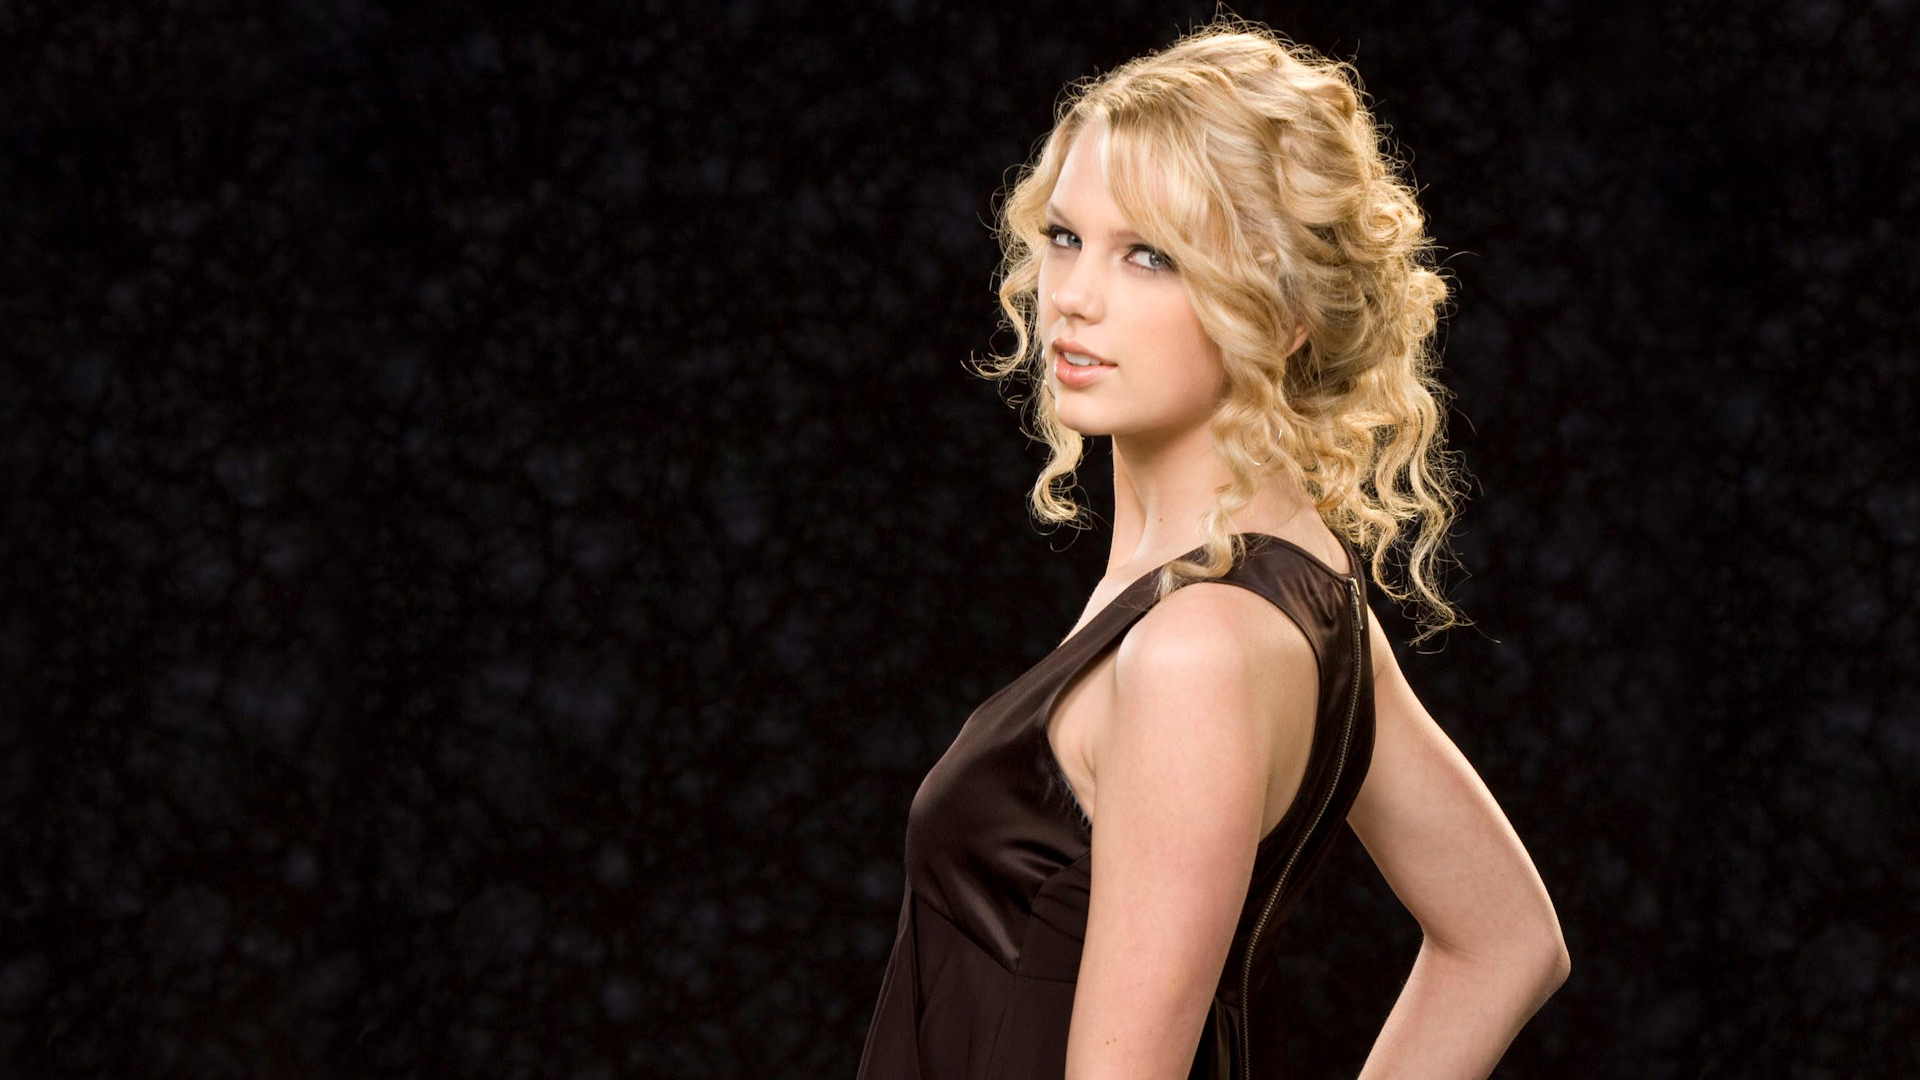 taylor swift wallpapers movie hd wallpapers